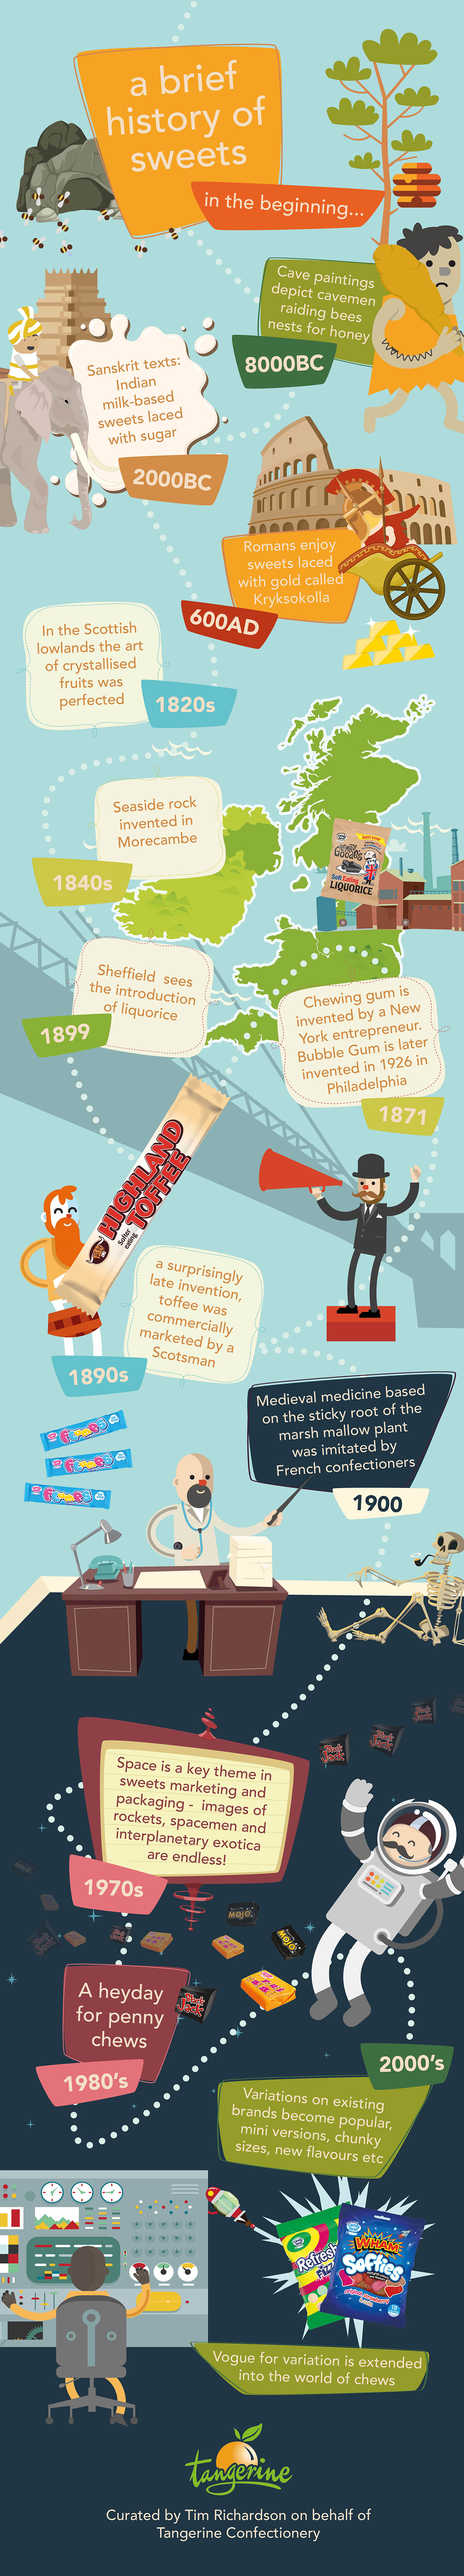 History of Sweets Infographic